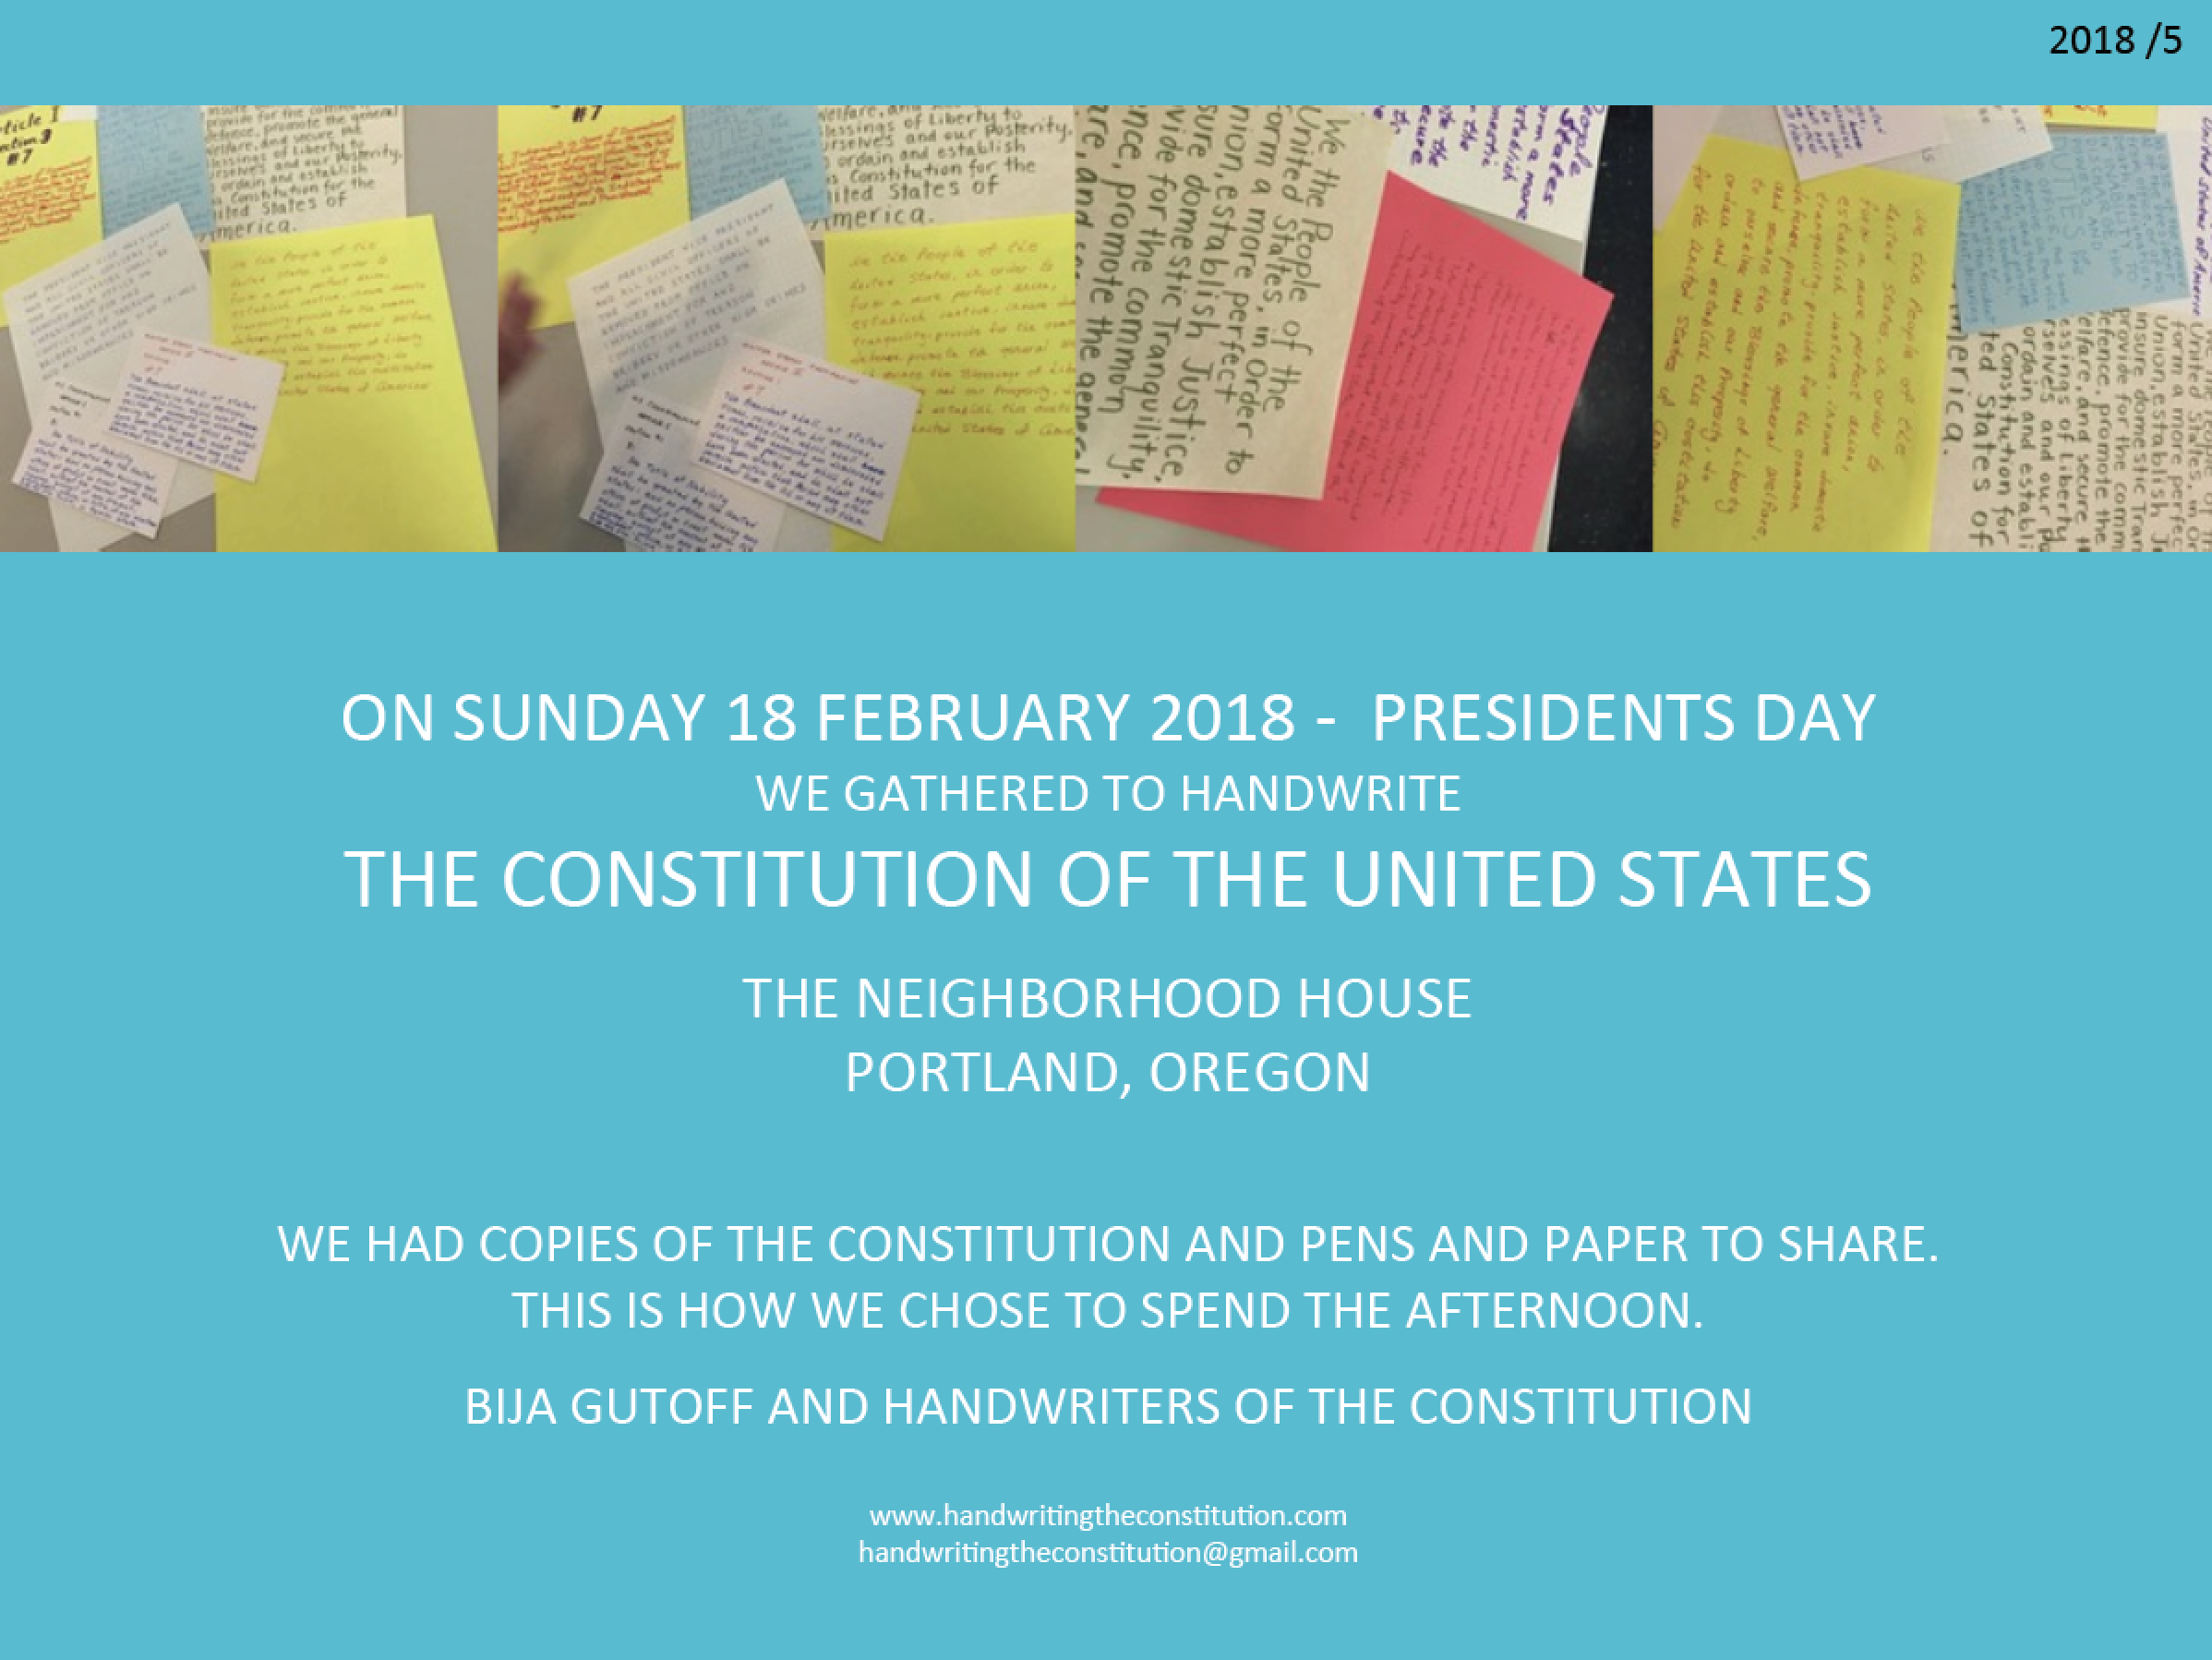 18 FEBRUARY 2018PRESIDENTS DAYportland, or - SESSION 45collaborator bija gutoff